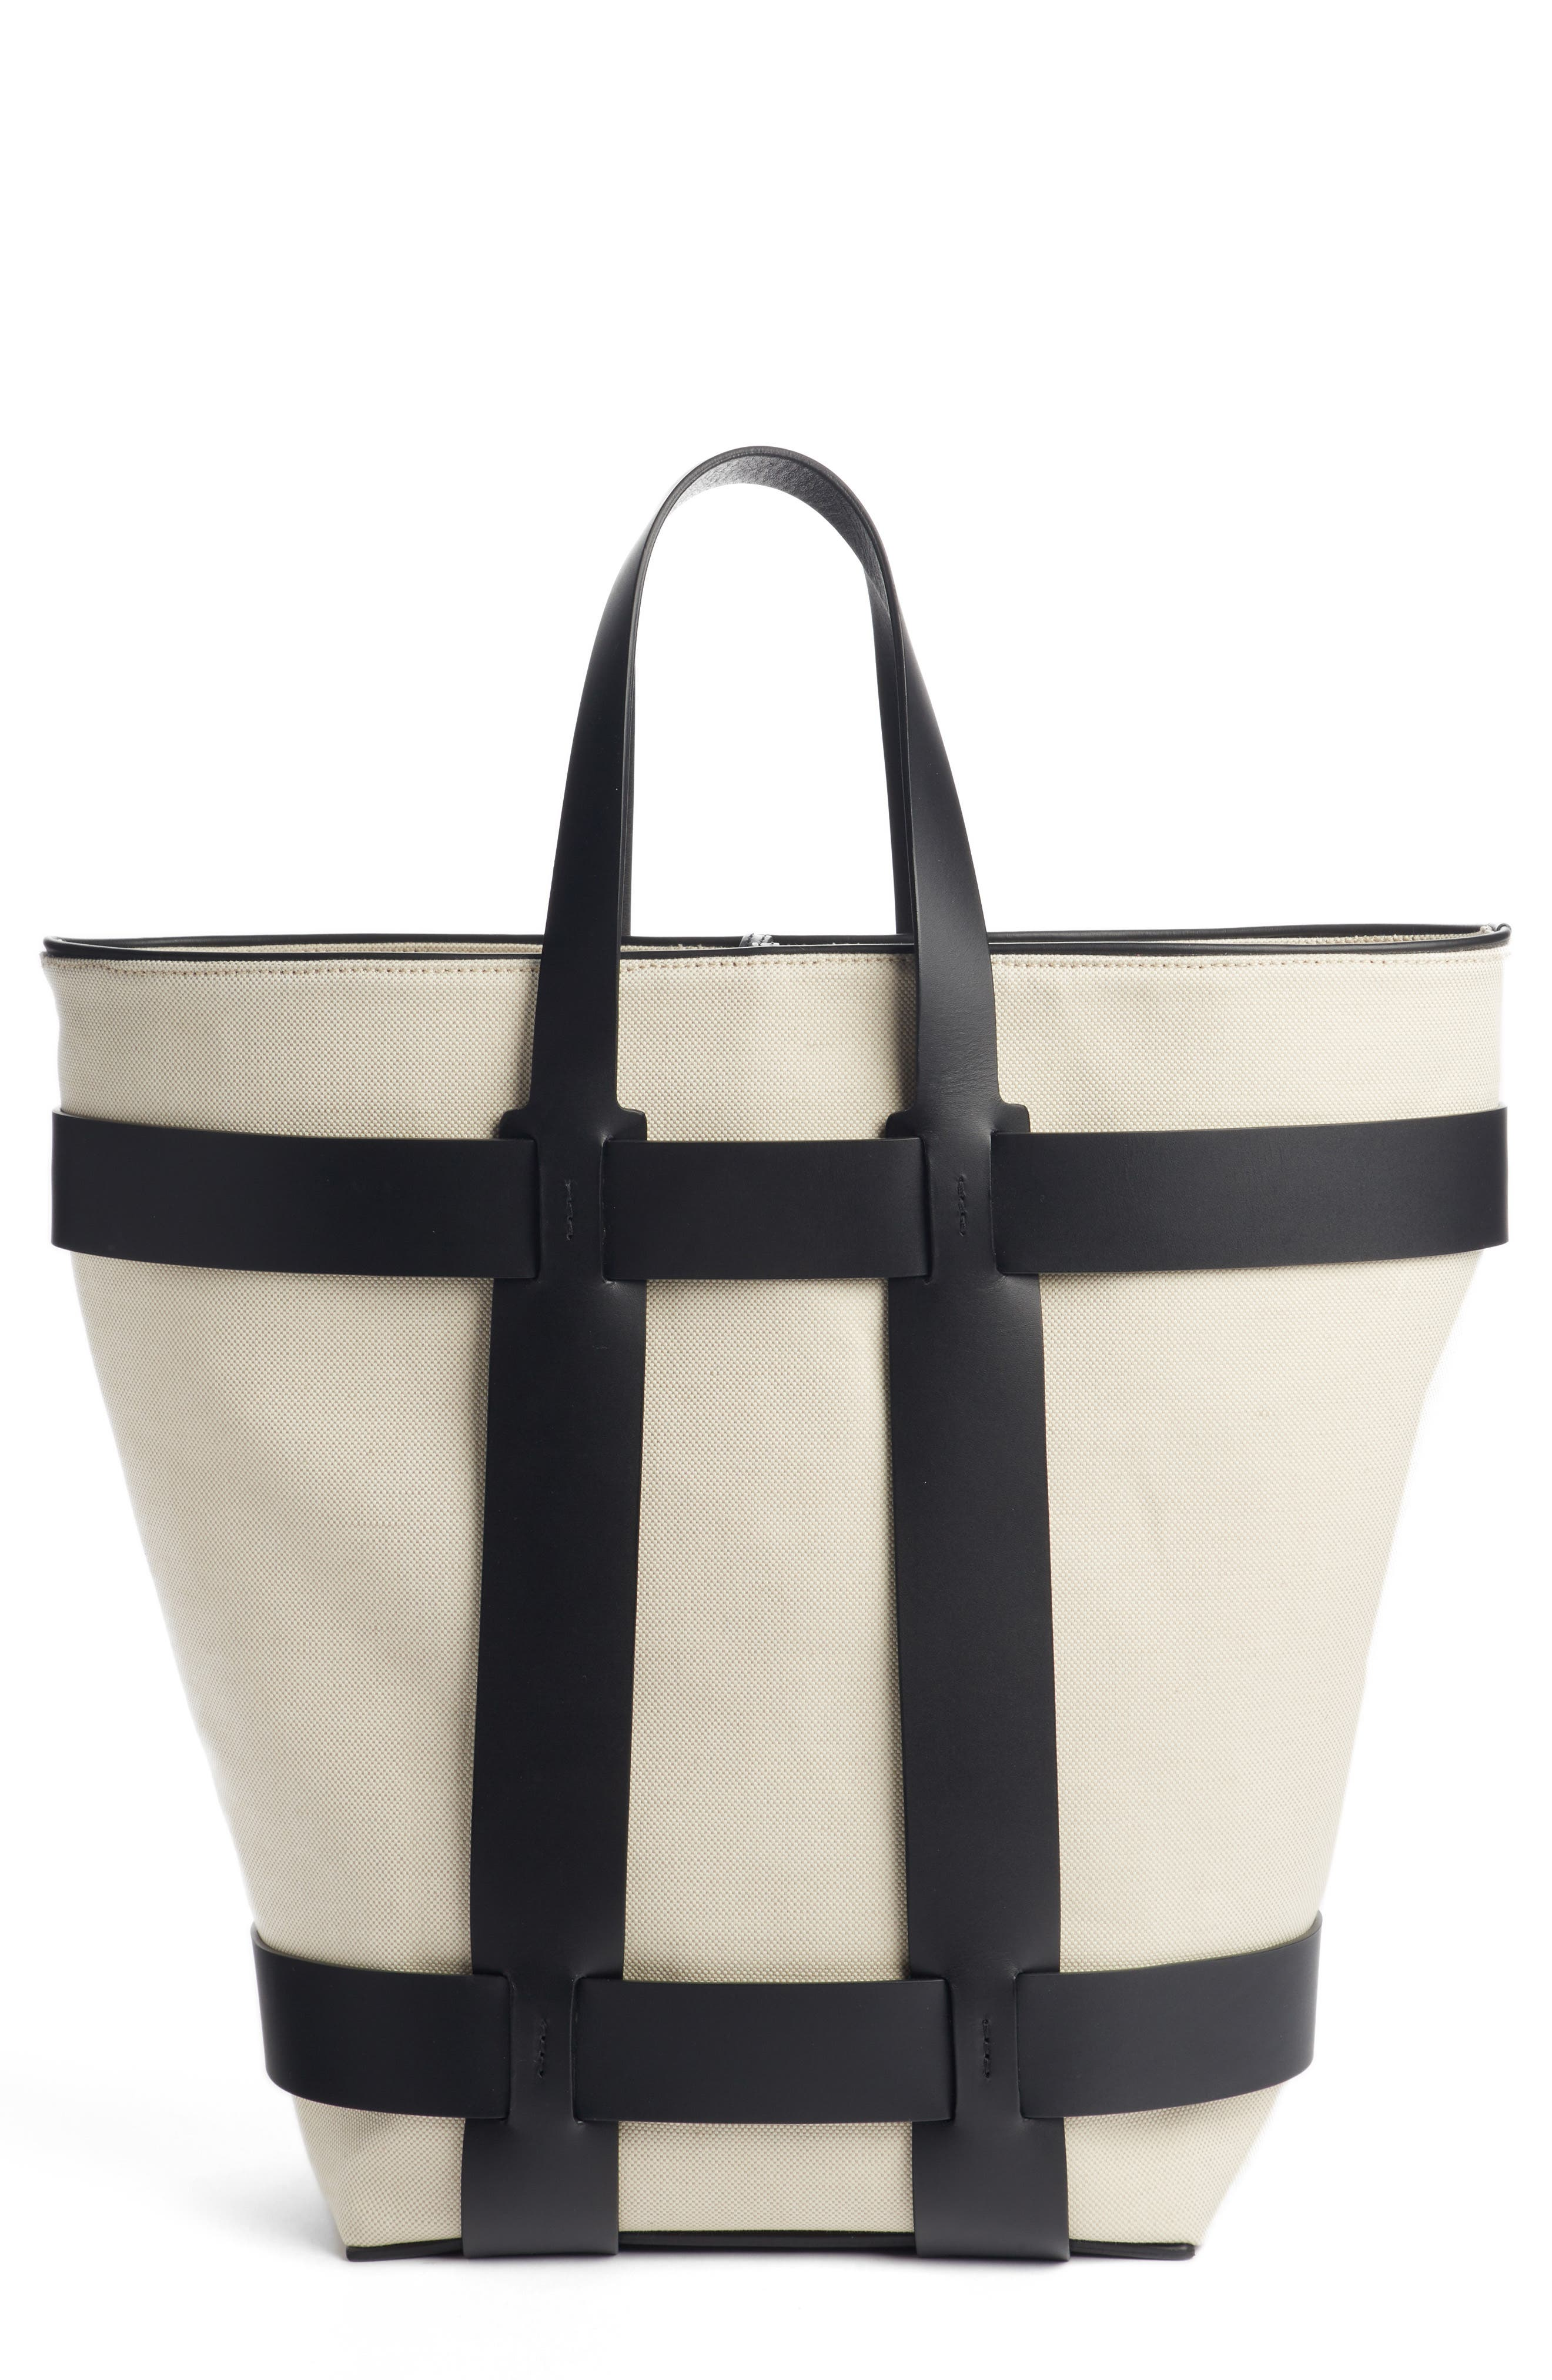 PACO RABANNE Cage Leather & Canvas North/South Tote - Ivory in Ivory/ Black